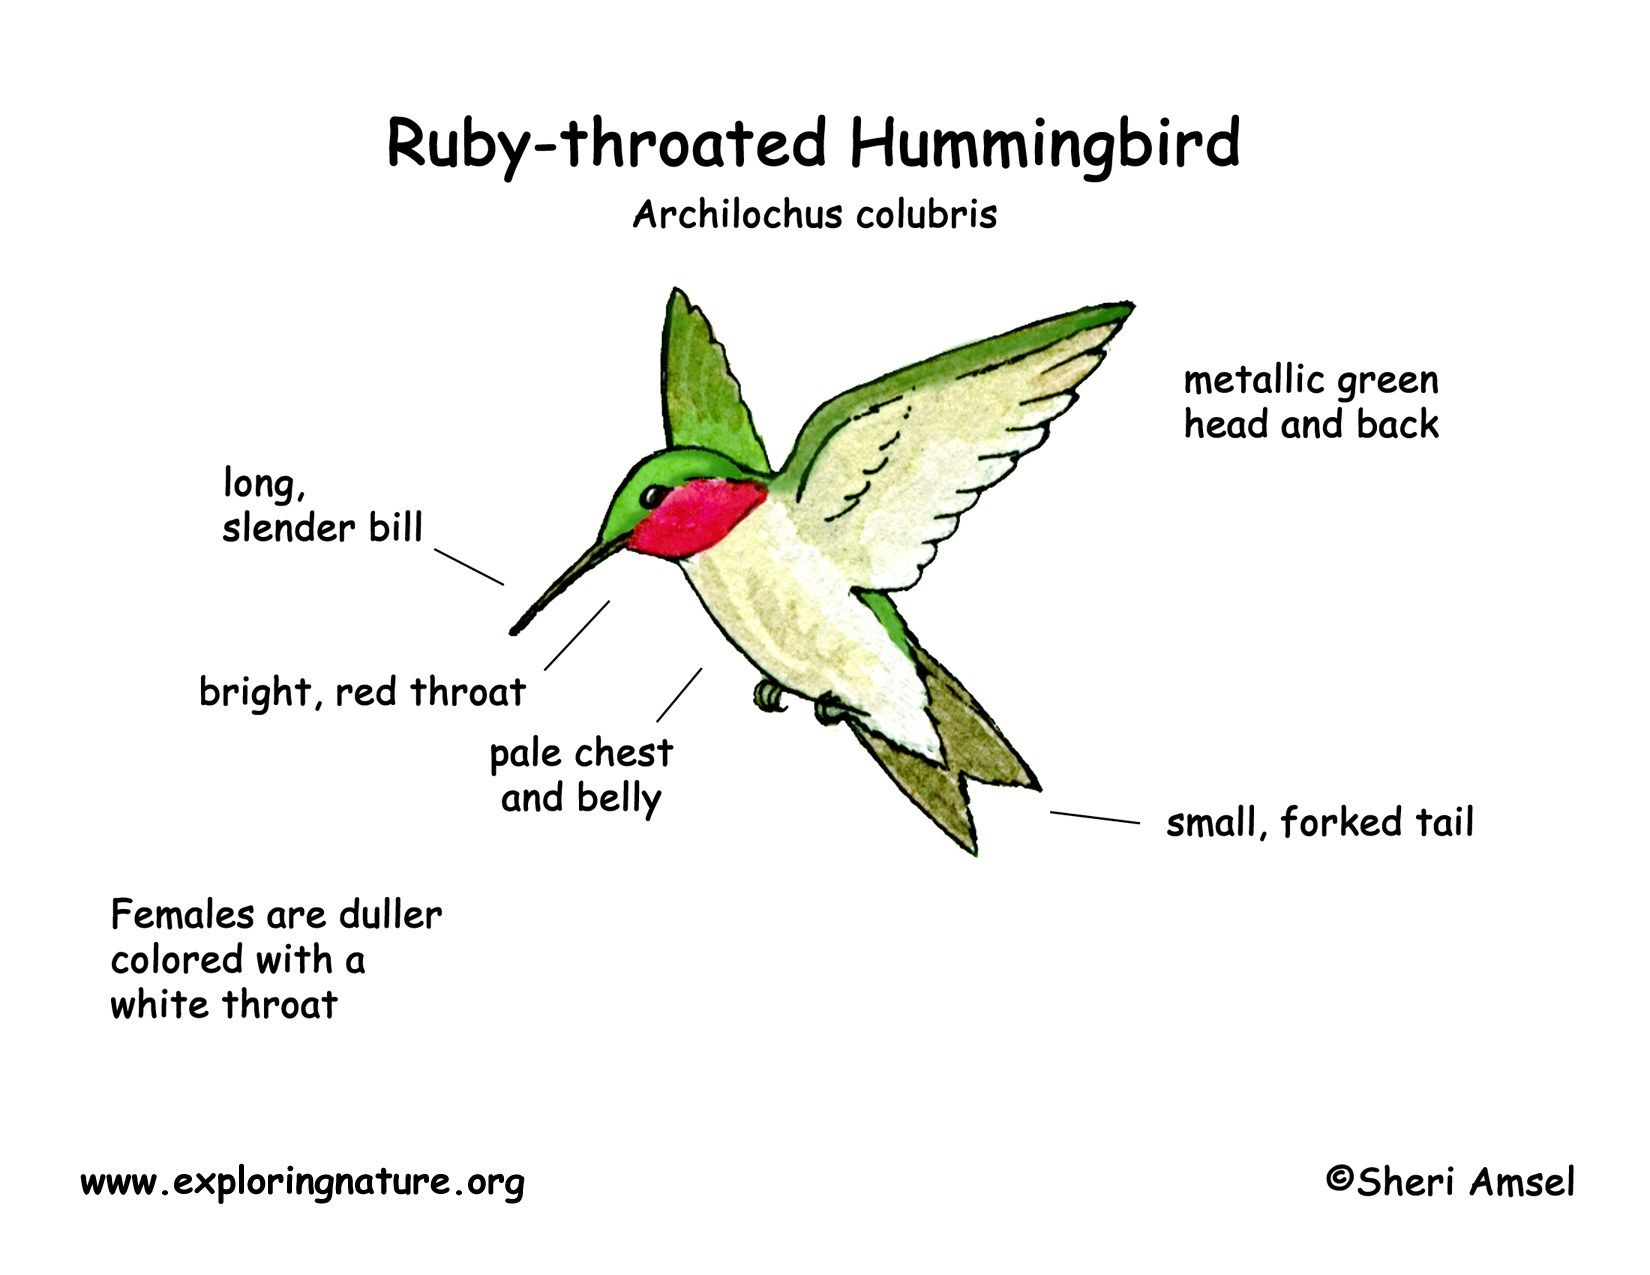 hummingbird ruby throated | Ideas for the House | Pinterest ...